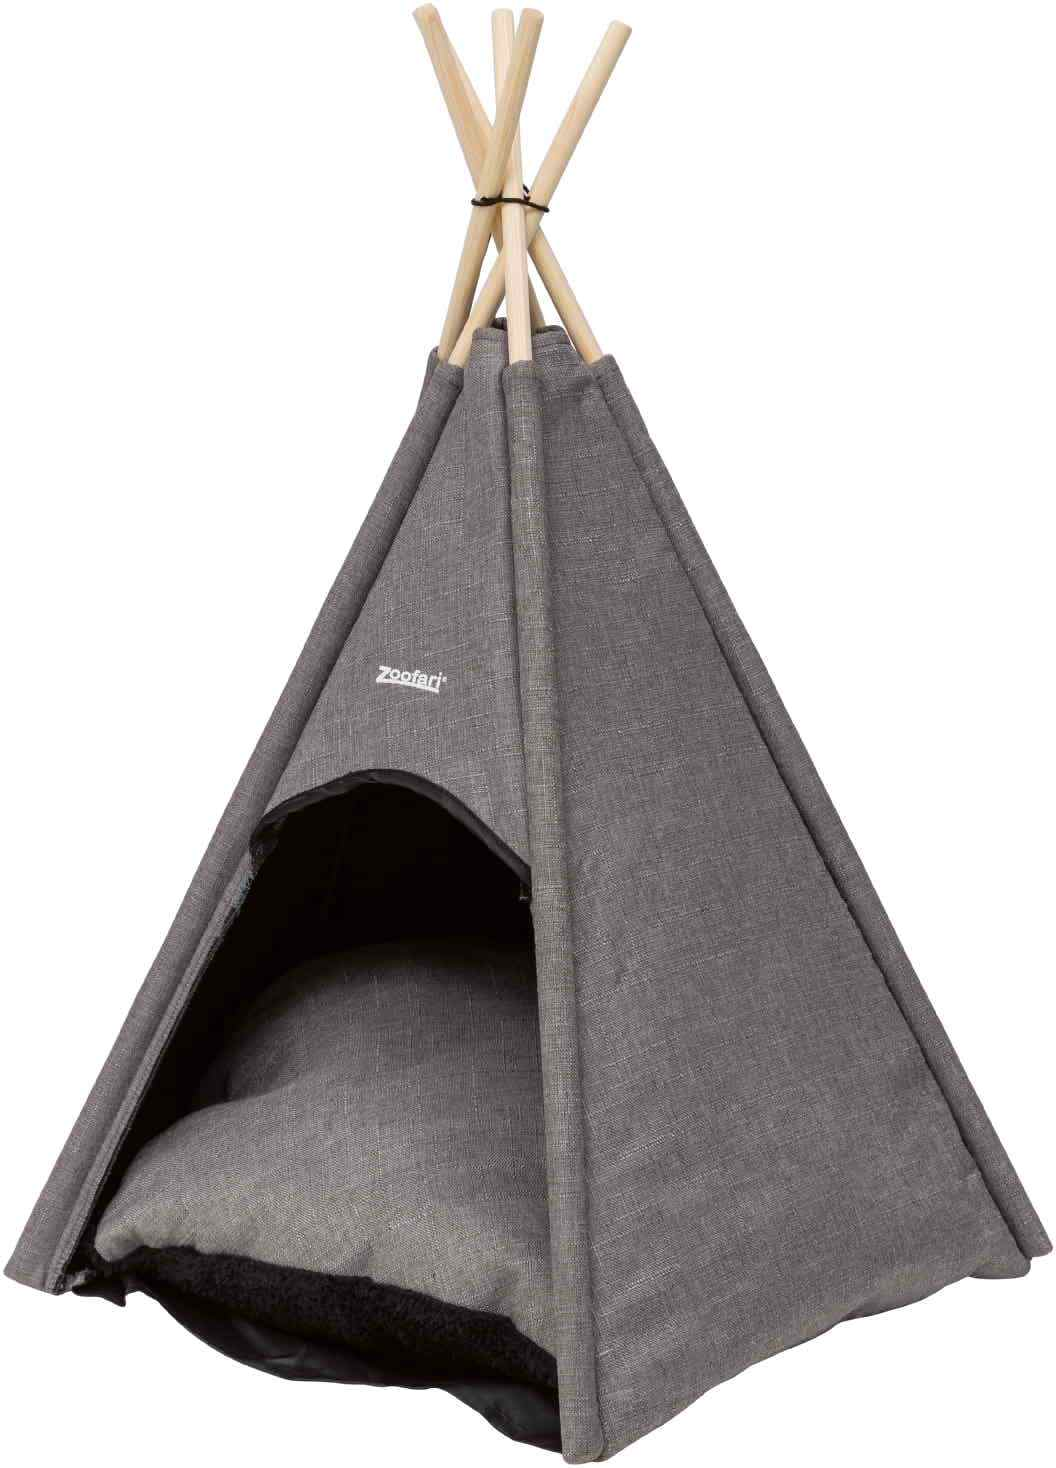 Treat your pet to this really cute  tent for just £12.99 from Lidl